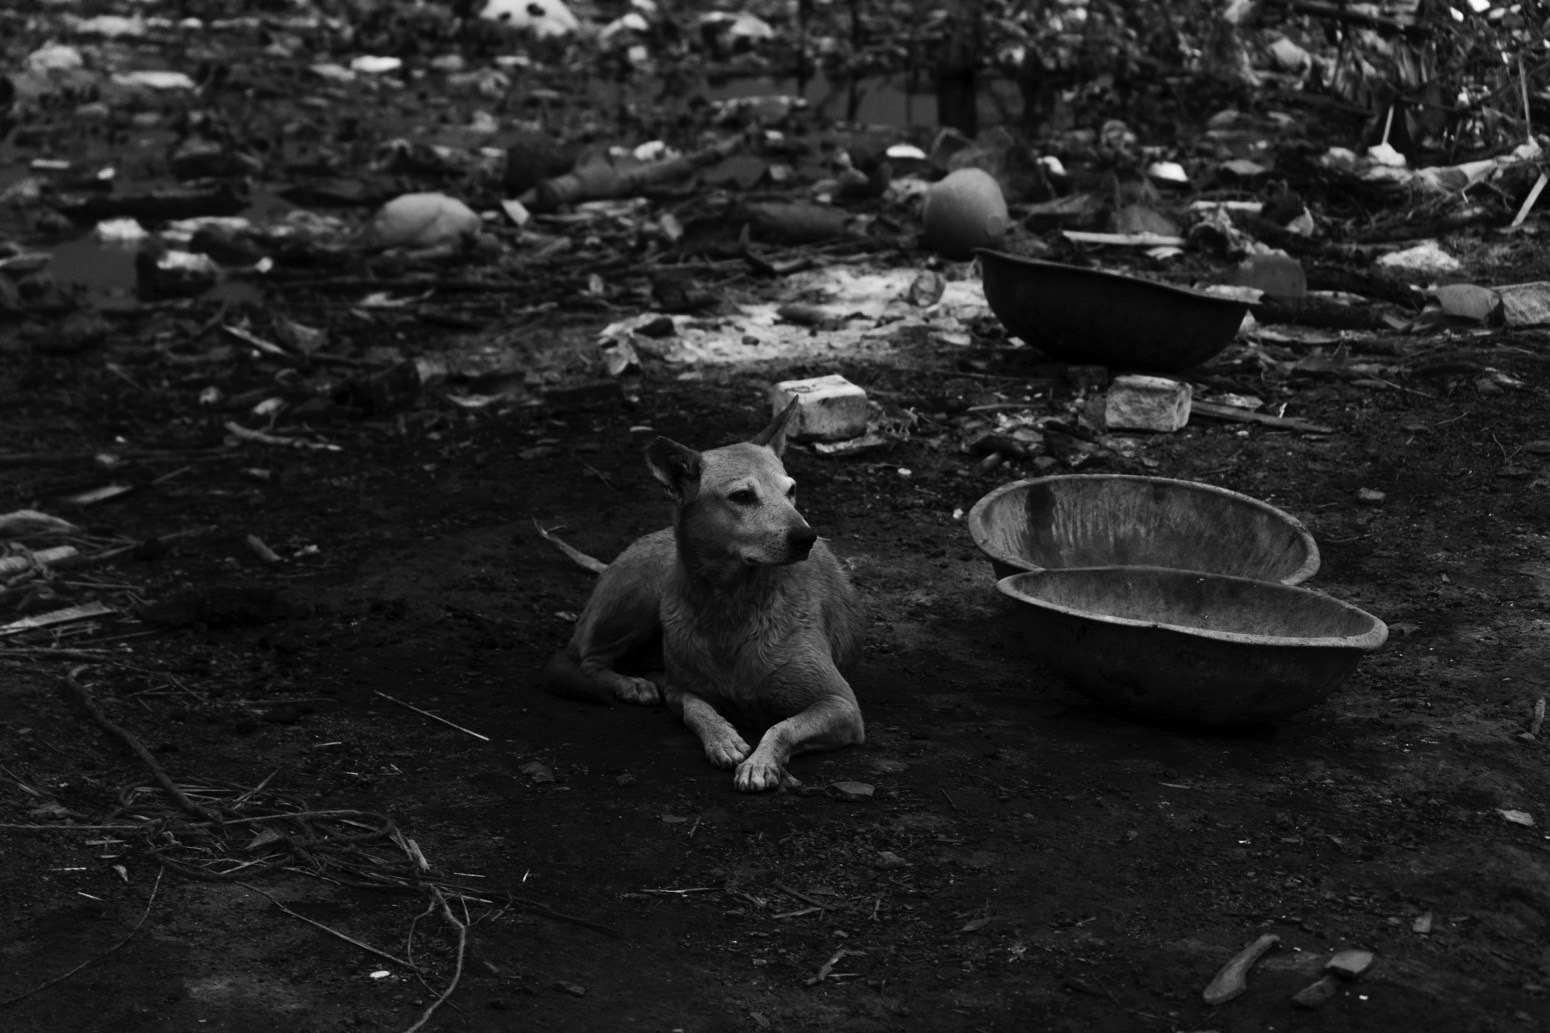 A dog sitting at the ghat amongst the remains of pyres. Credit: Wamika Singh